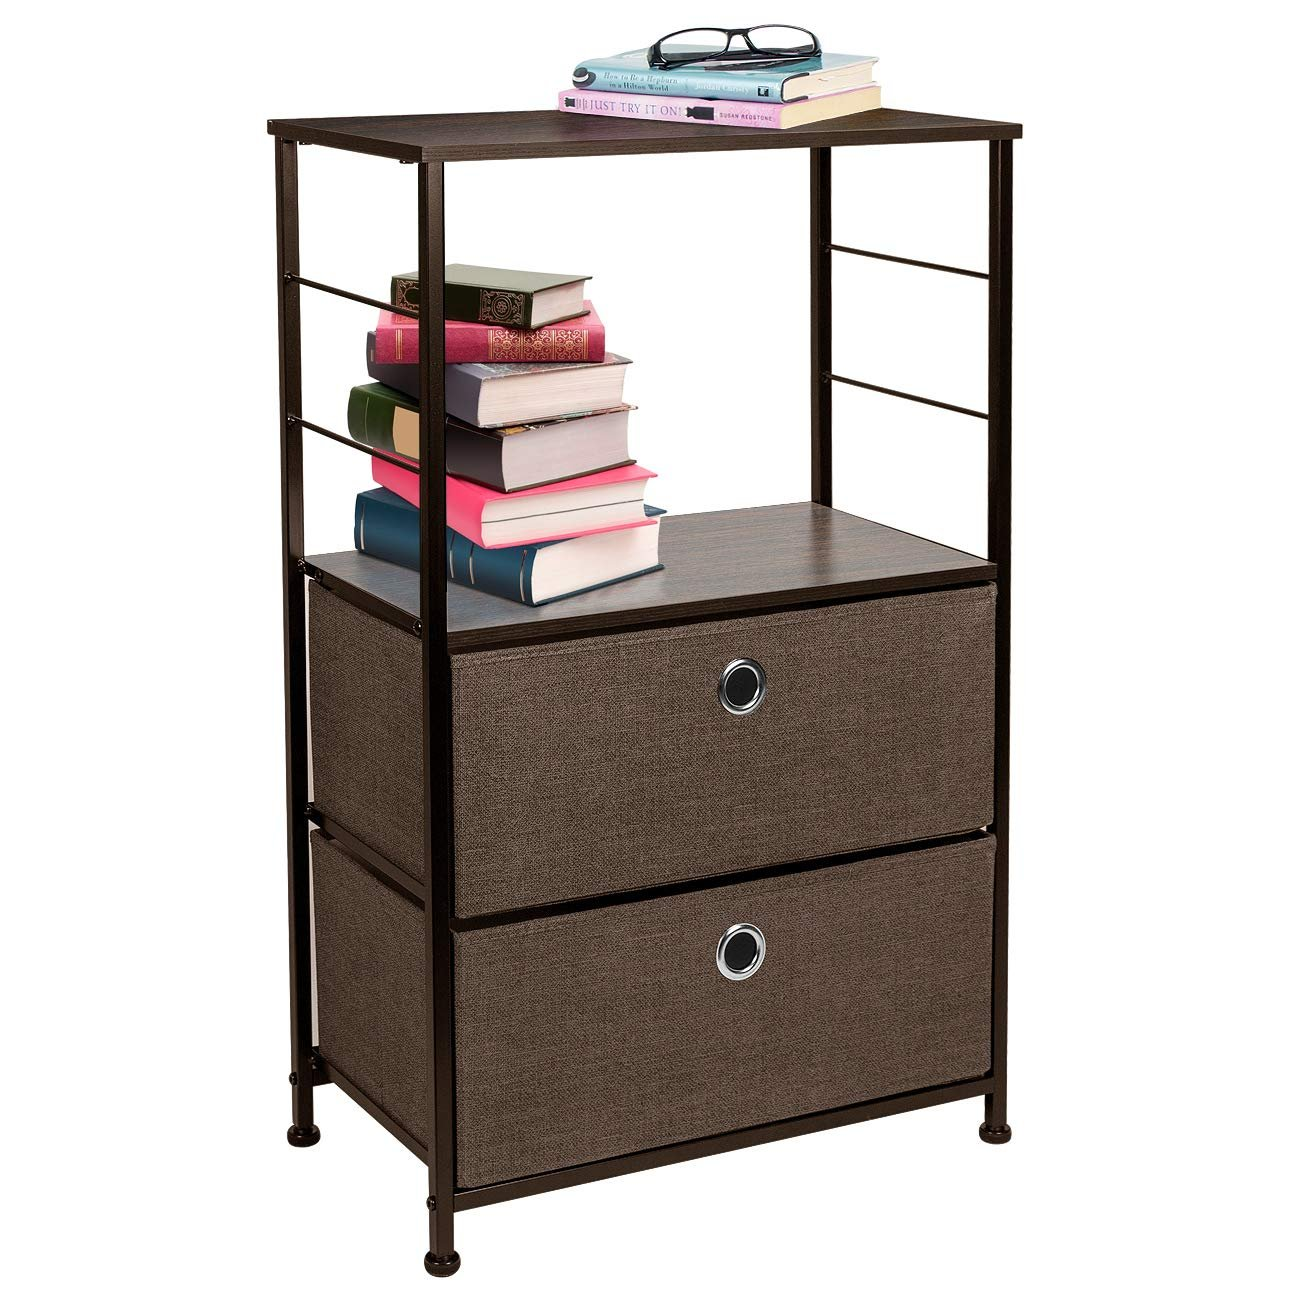 Details About Sorbus Nightstand 2 Drawer Shelf Storage Bedside Furniture Accent End